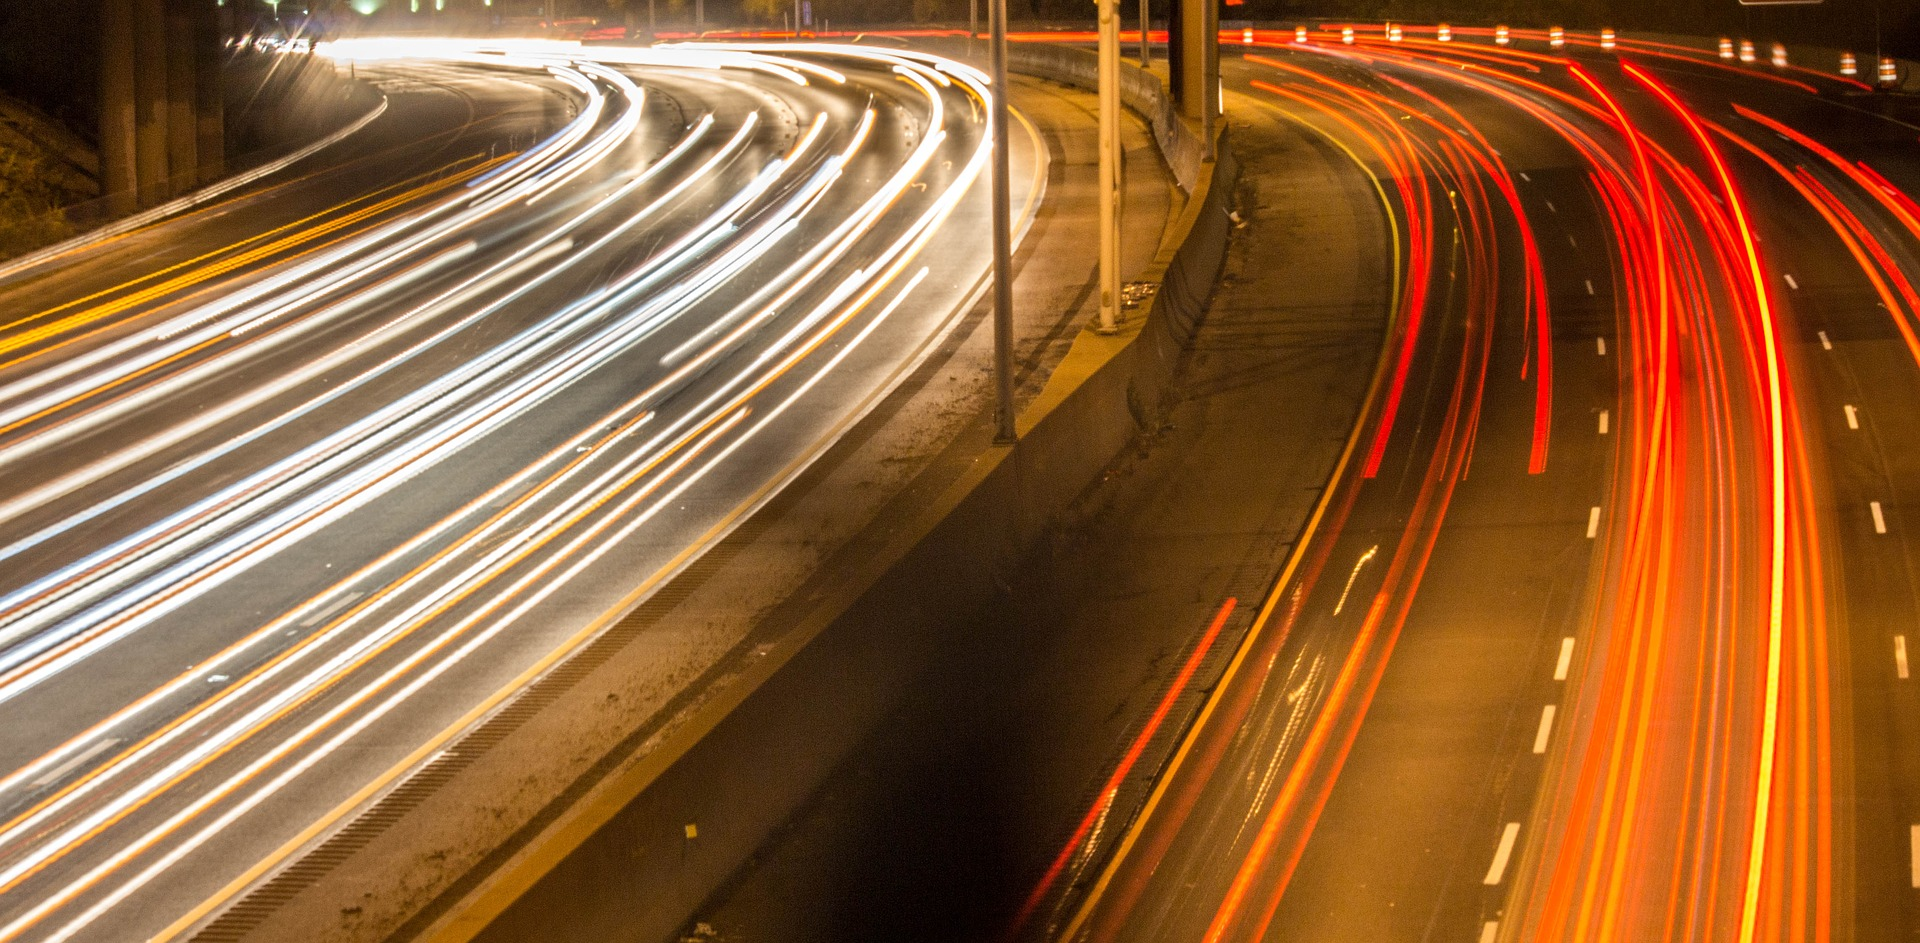 Blurred freeway with lights appearing as streaks.